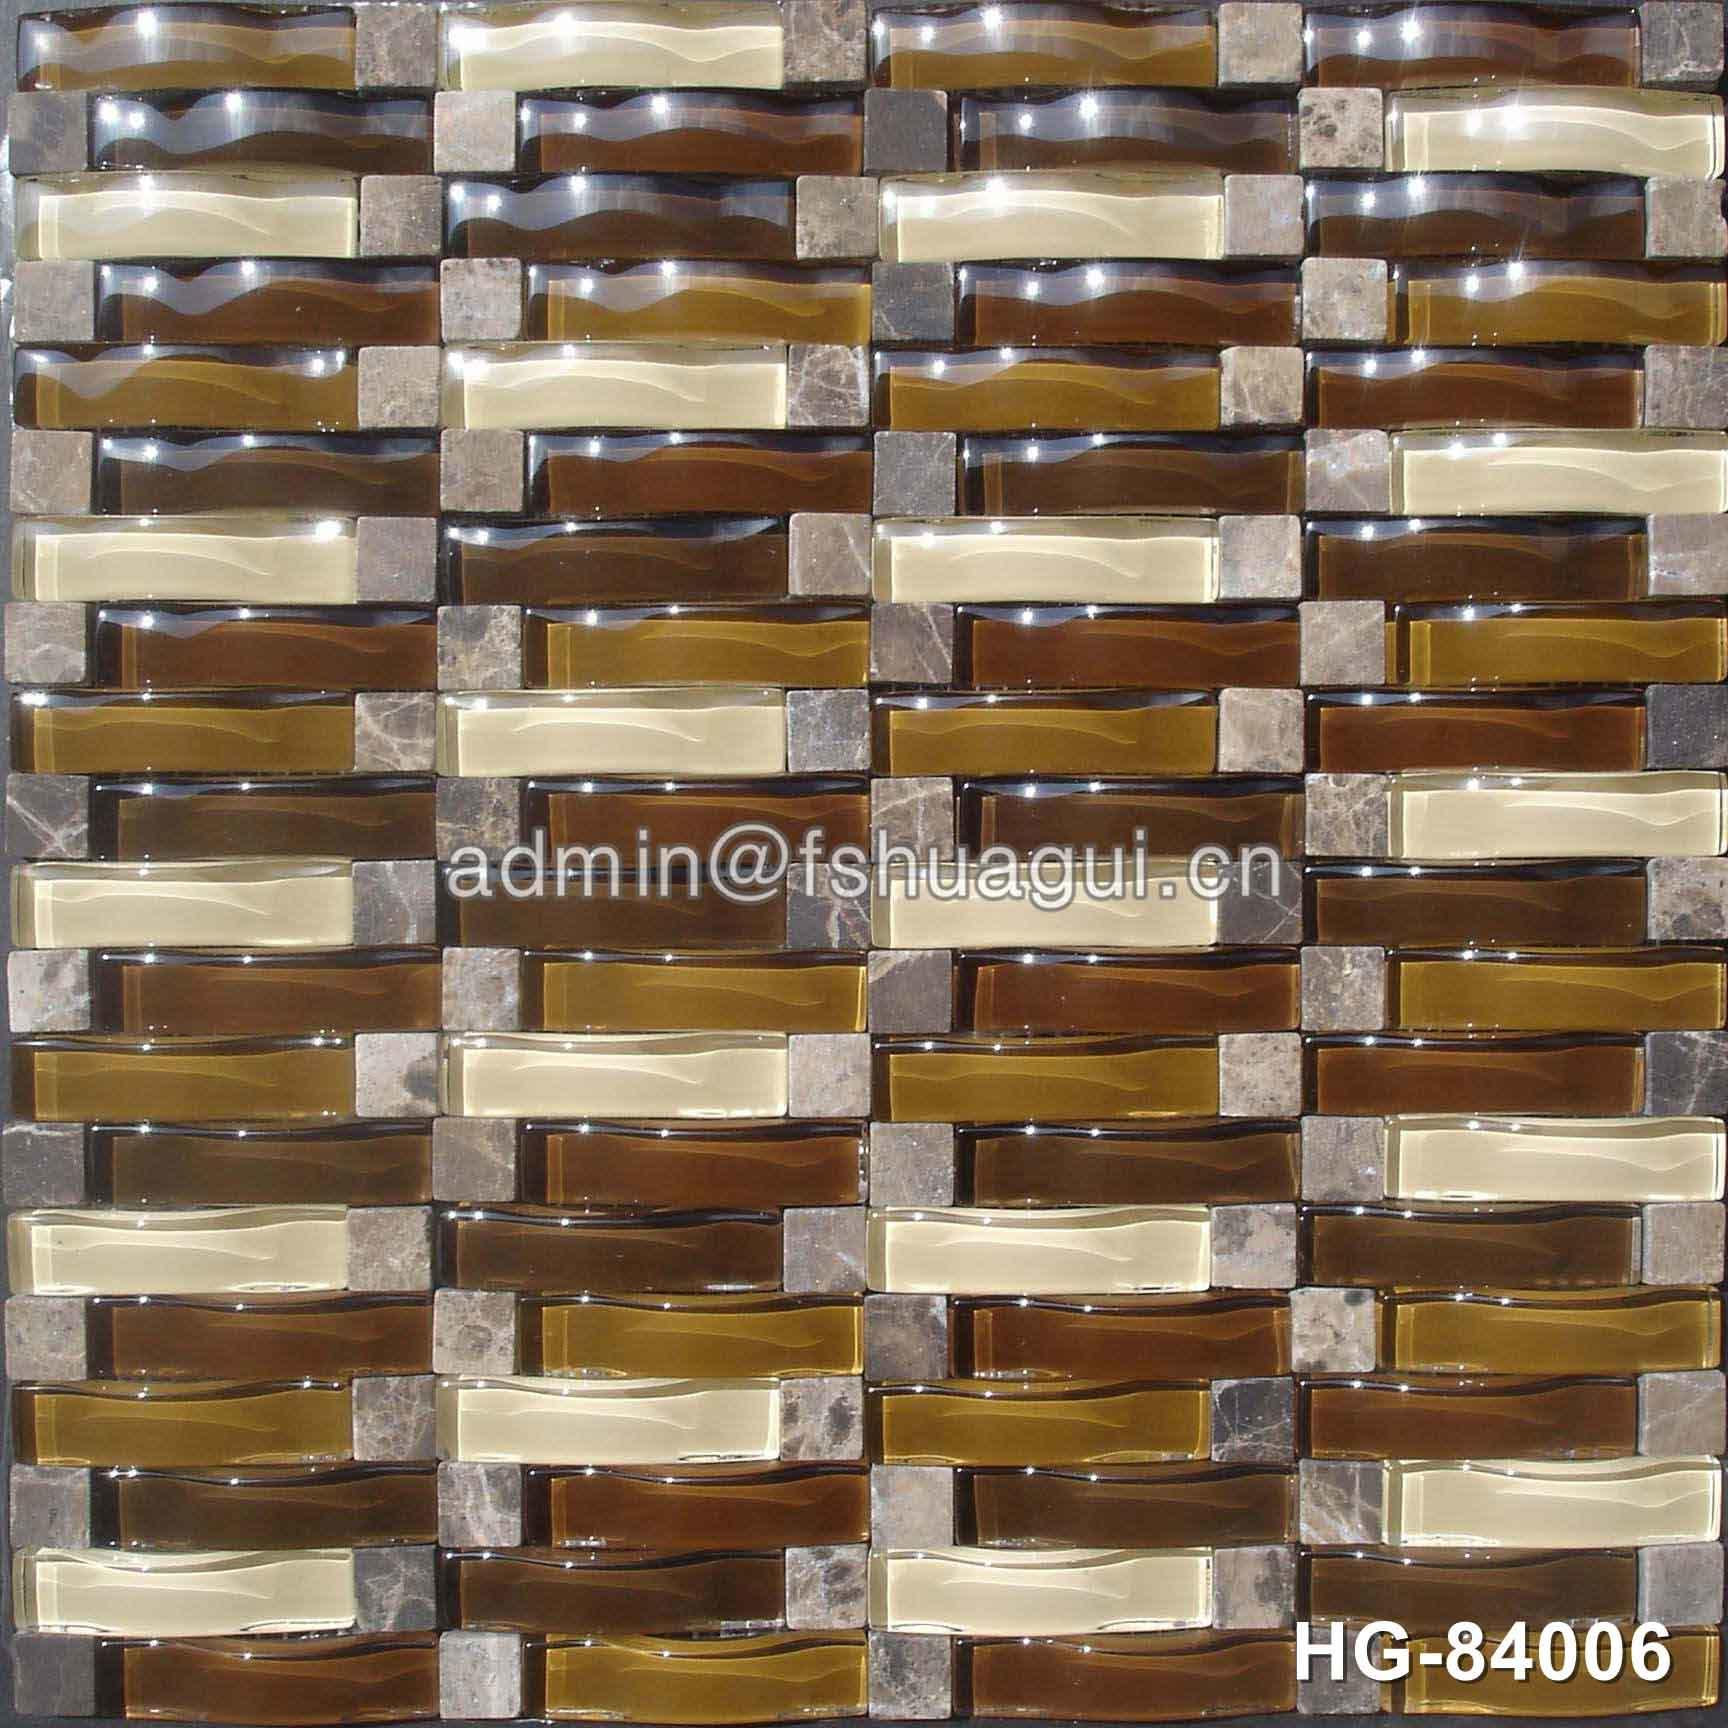 Iridescence 3D waves arch glass tile mix stone mosaic in Spain